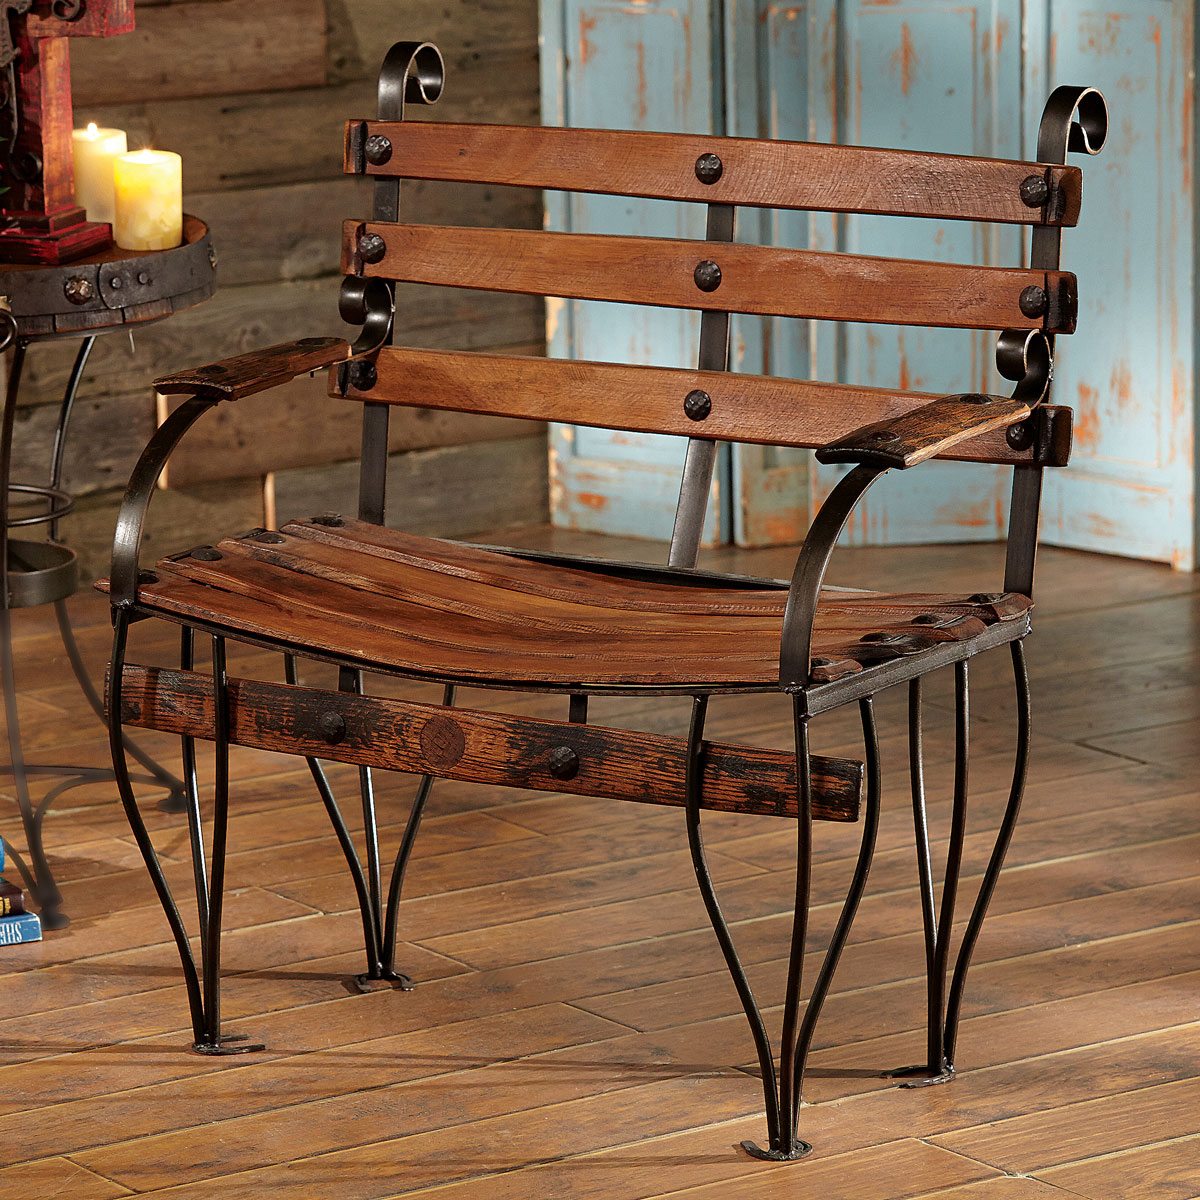 Black Forest Decor Tequila barrel bench